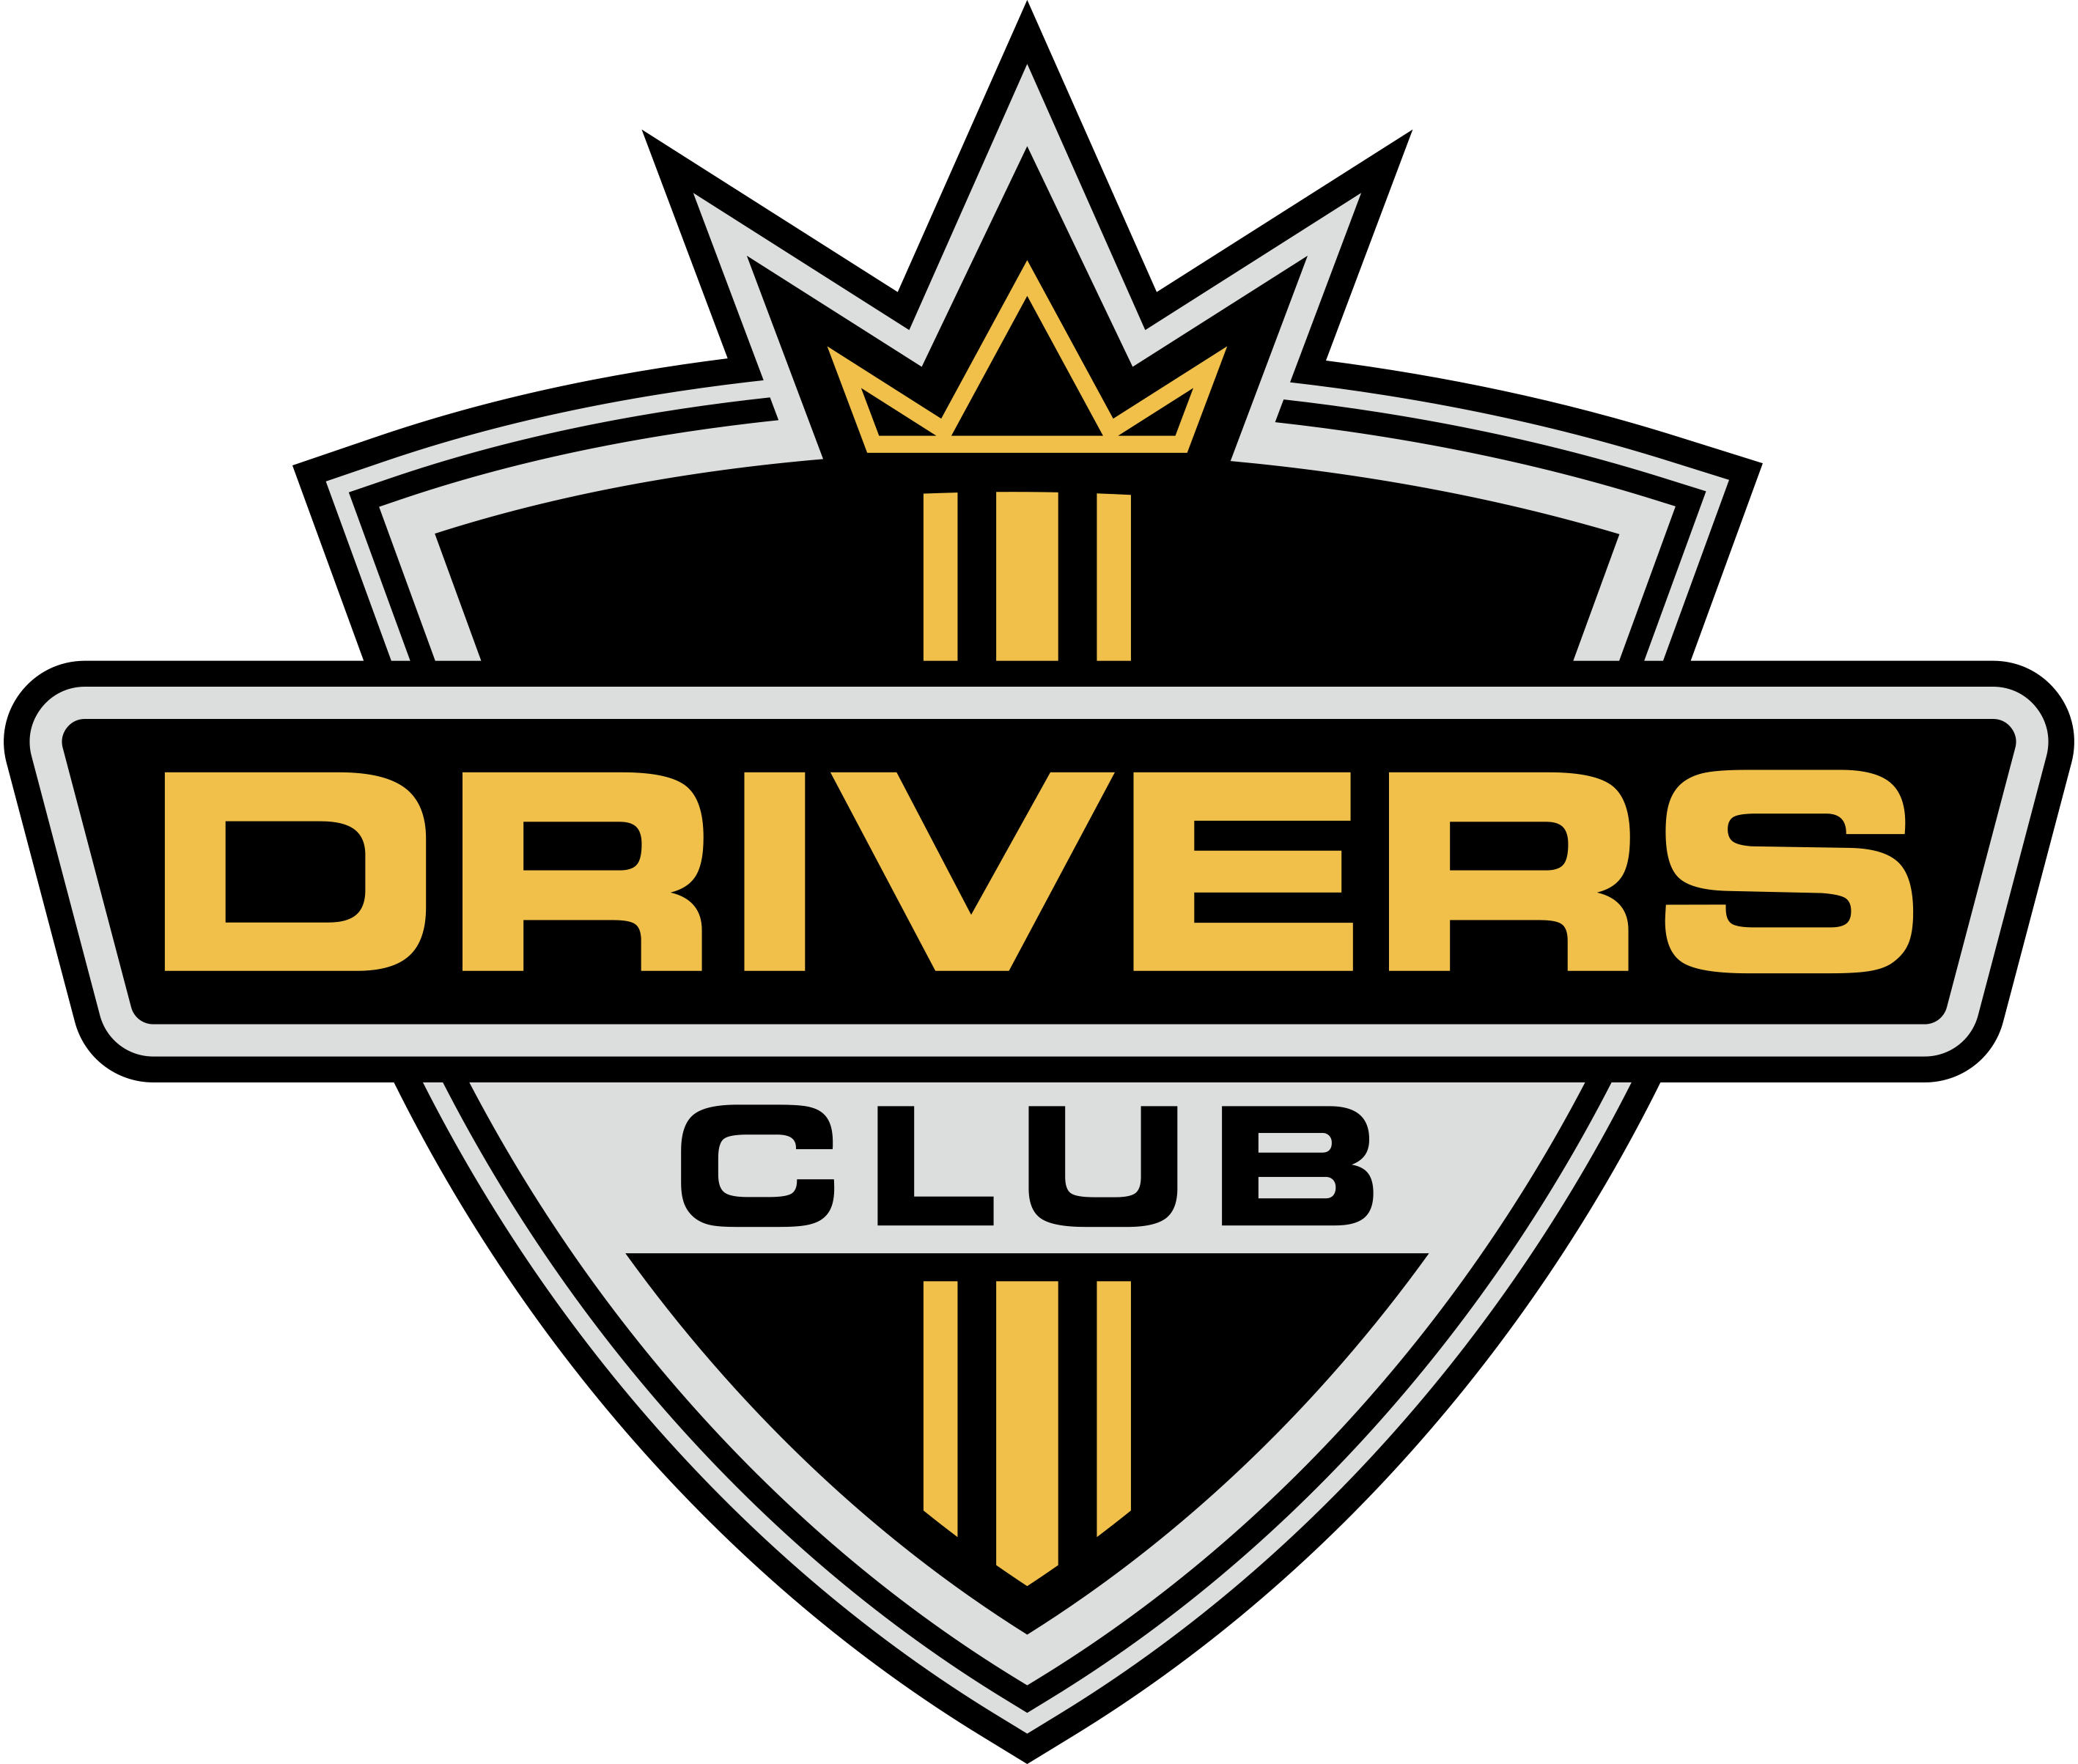 Drivers Club - now logo for supercar company